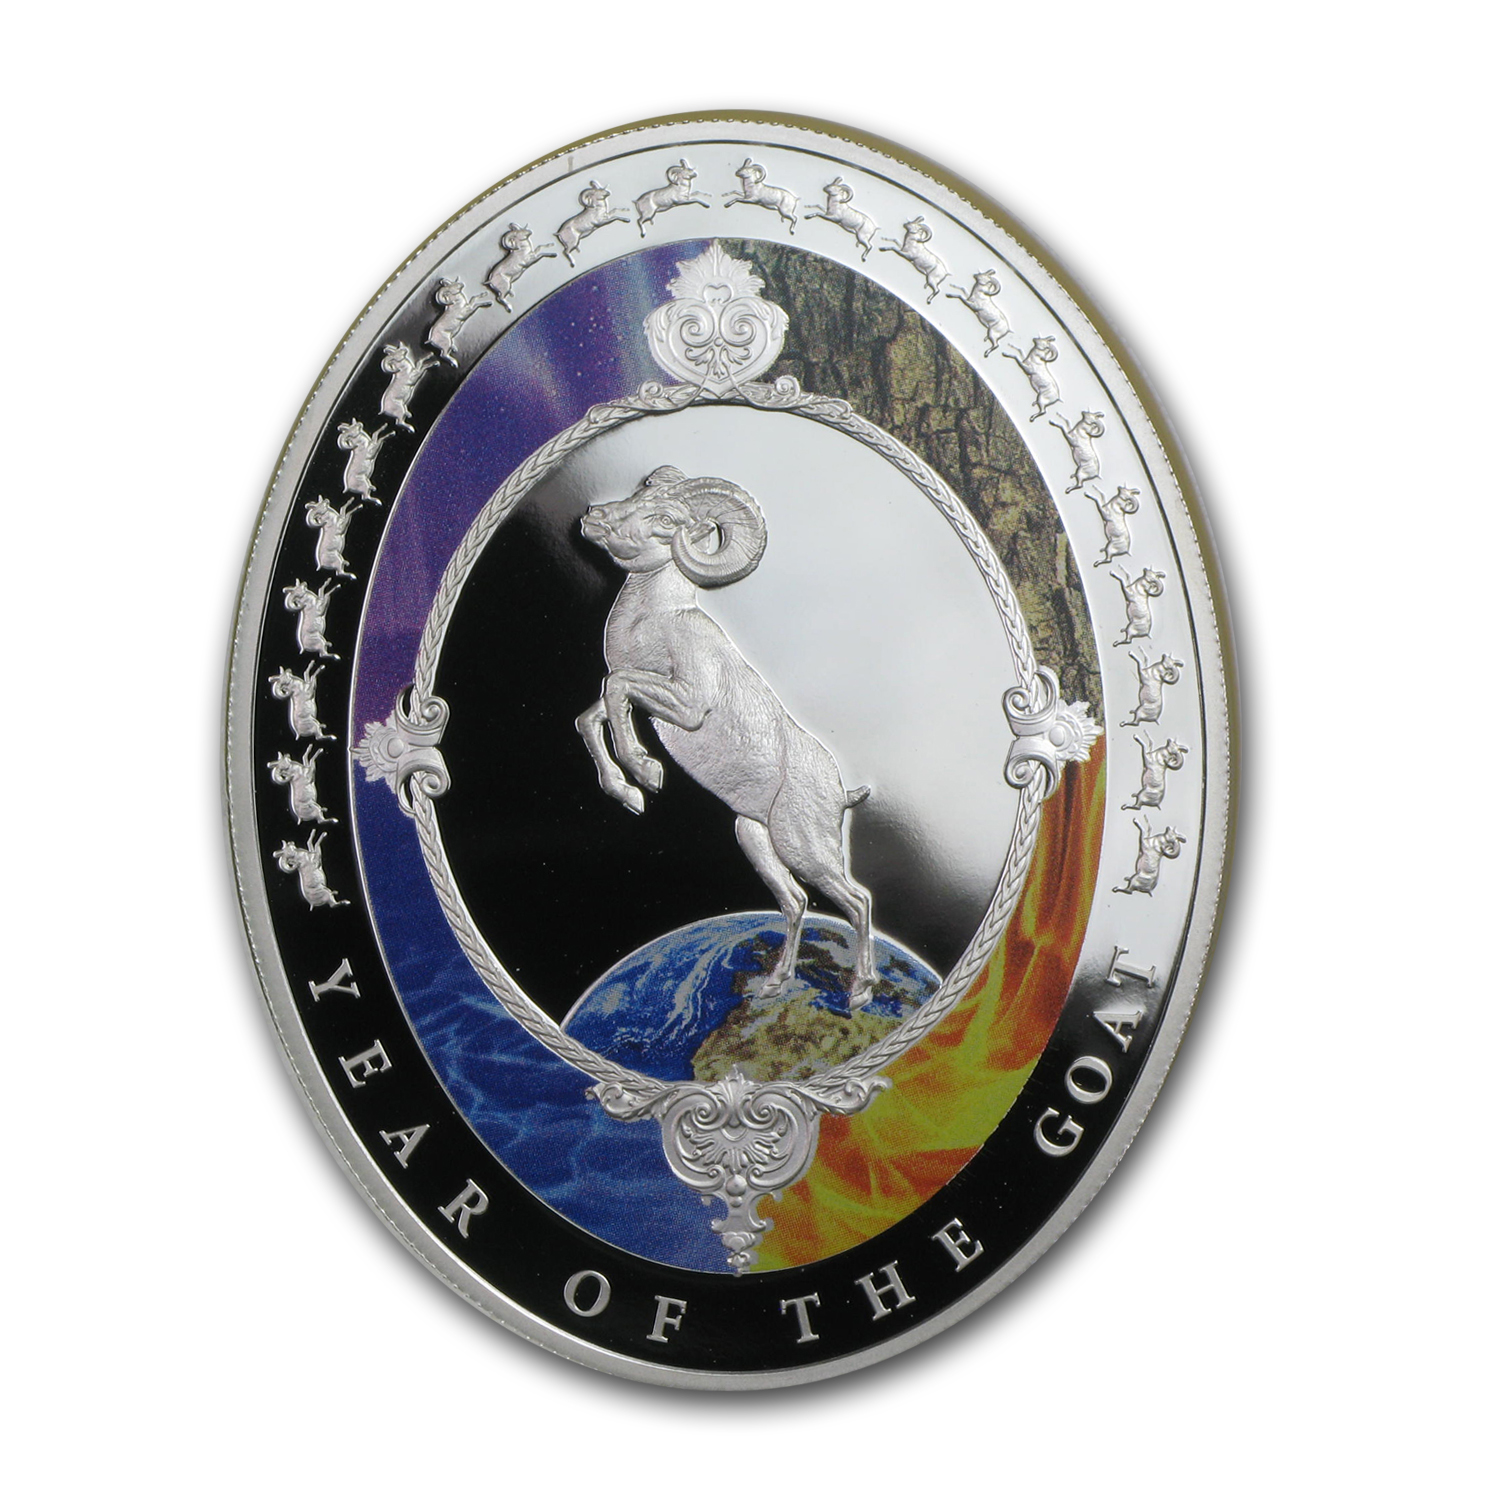 2015 1 oz Silver Year of the Goat Elements Proof (Oval)